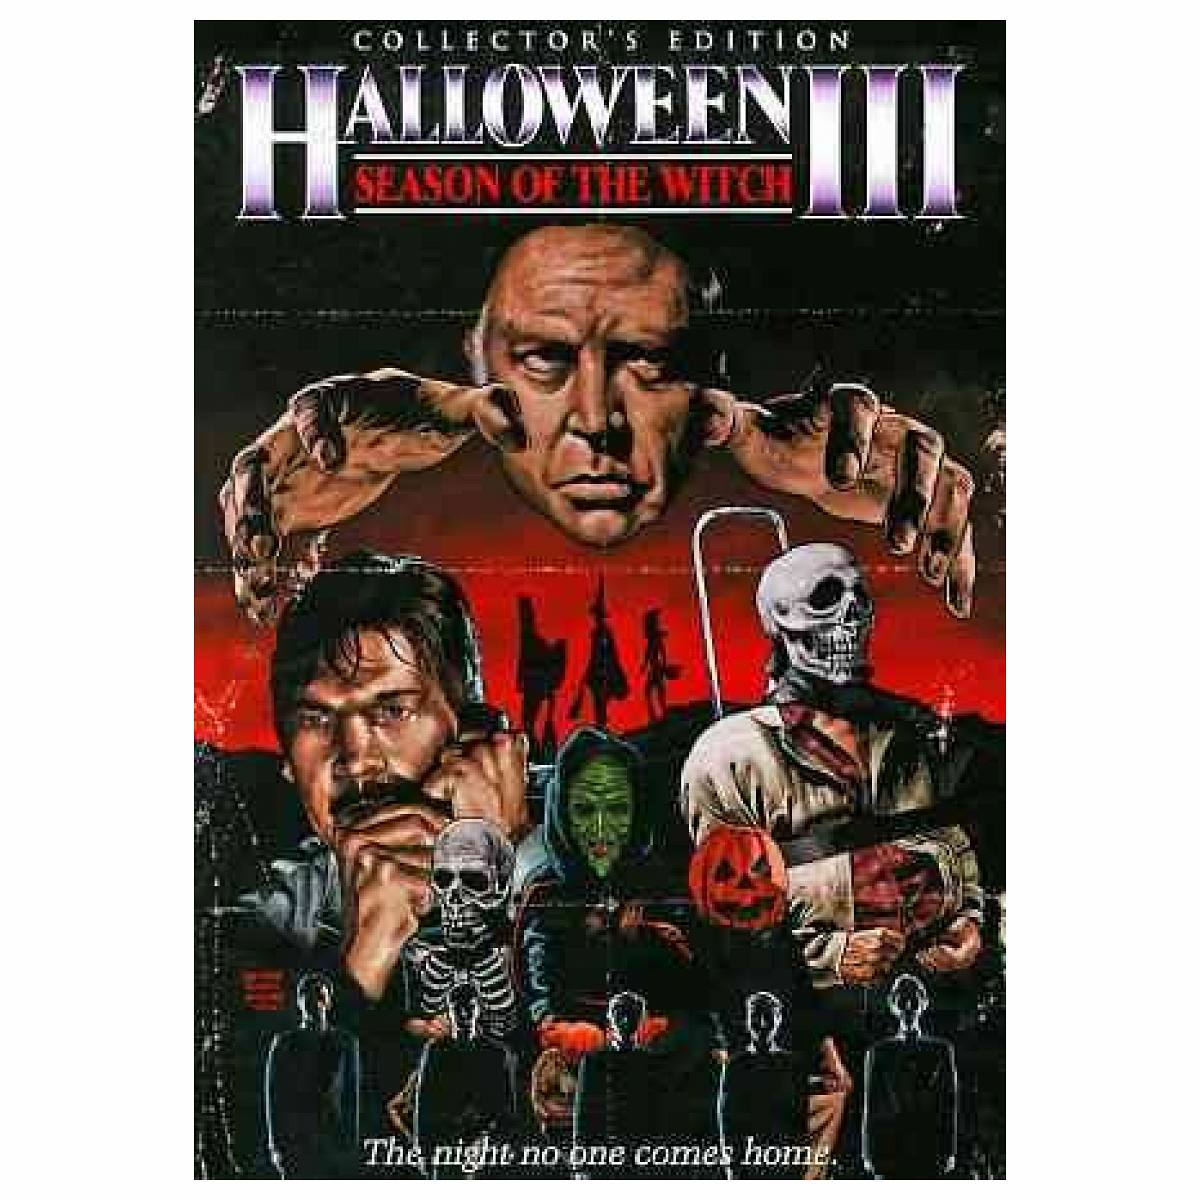 Halloween Iii:Season Of The Witch Ce 00056095